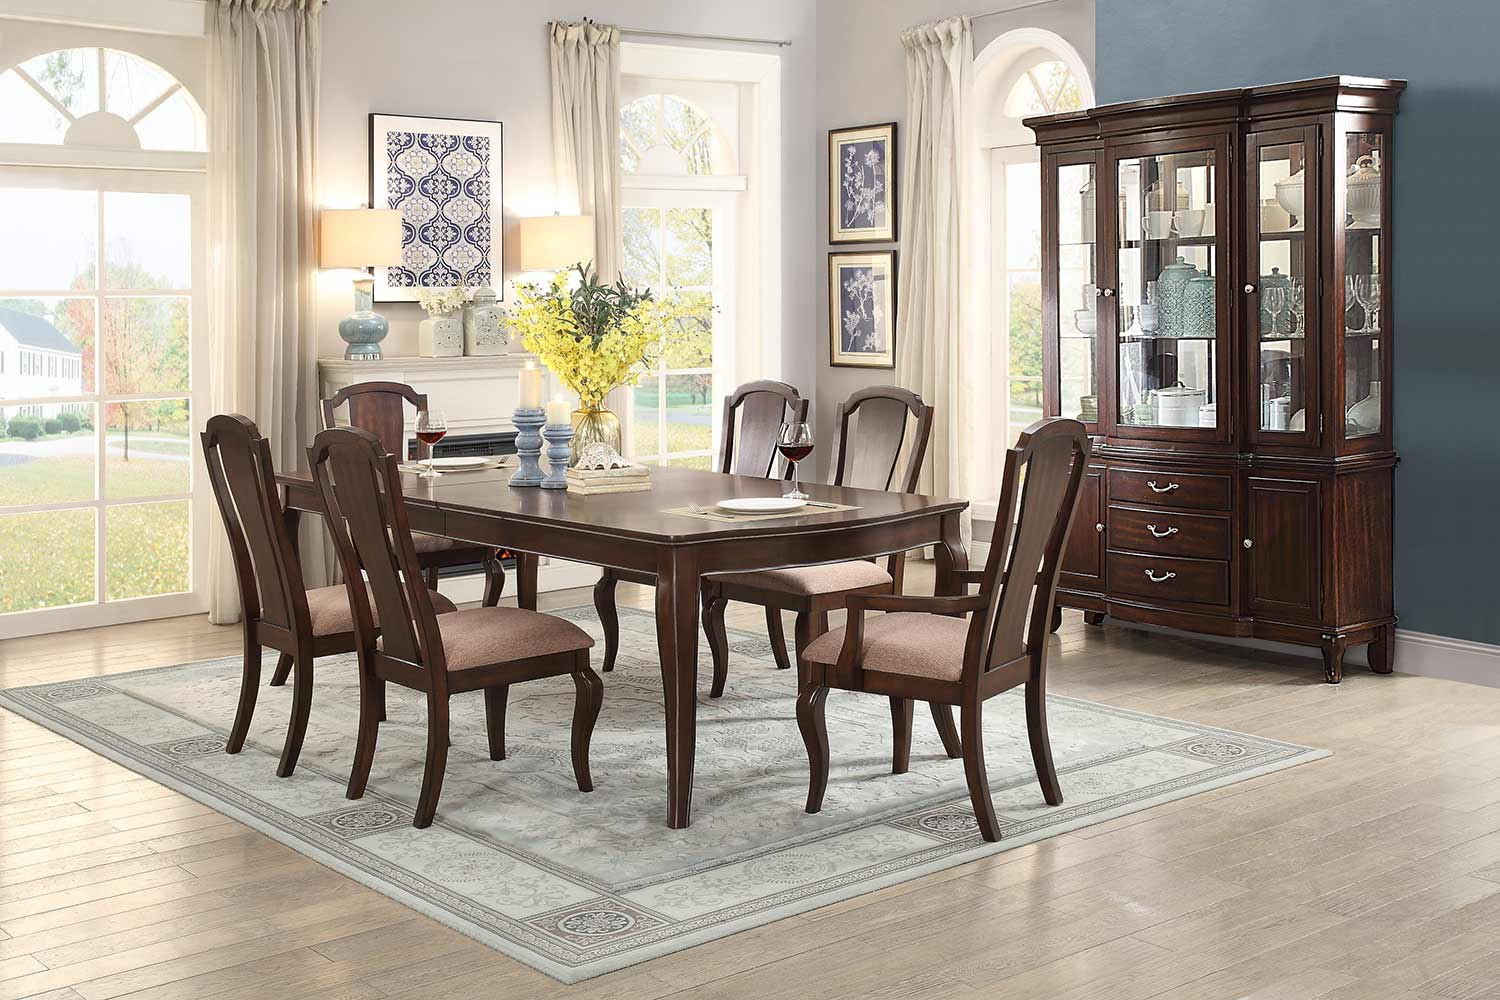 Homelegance Coleraine Dining Set - Cherry